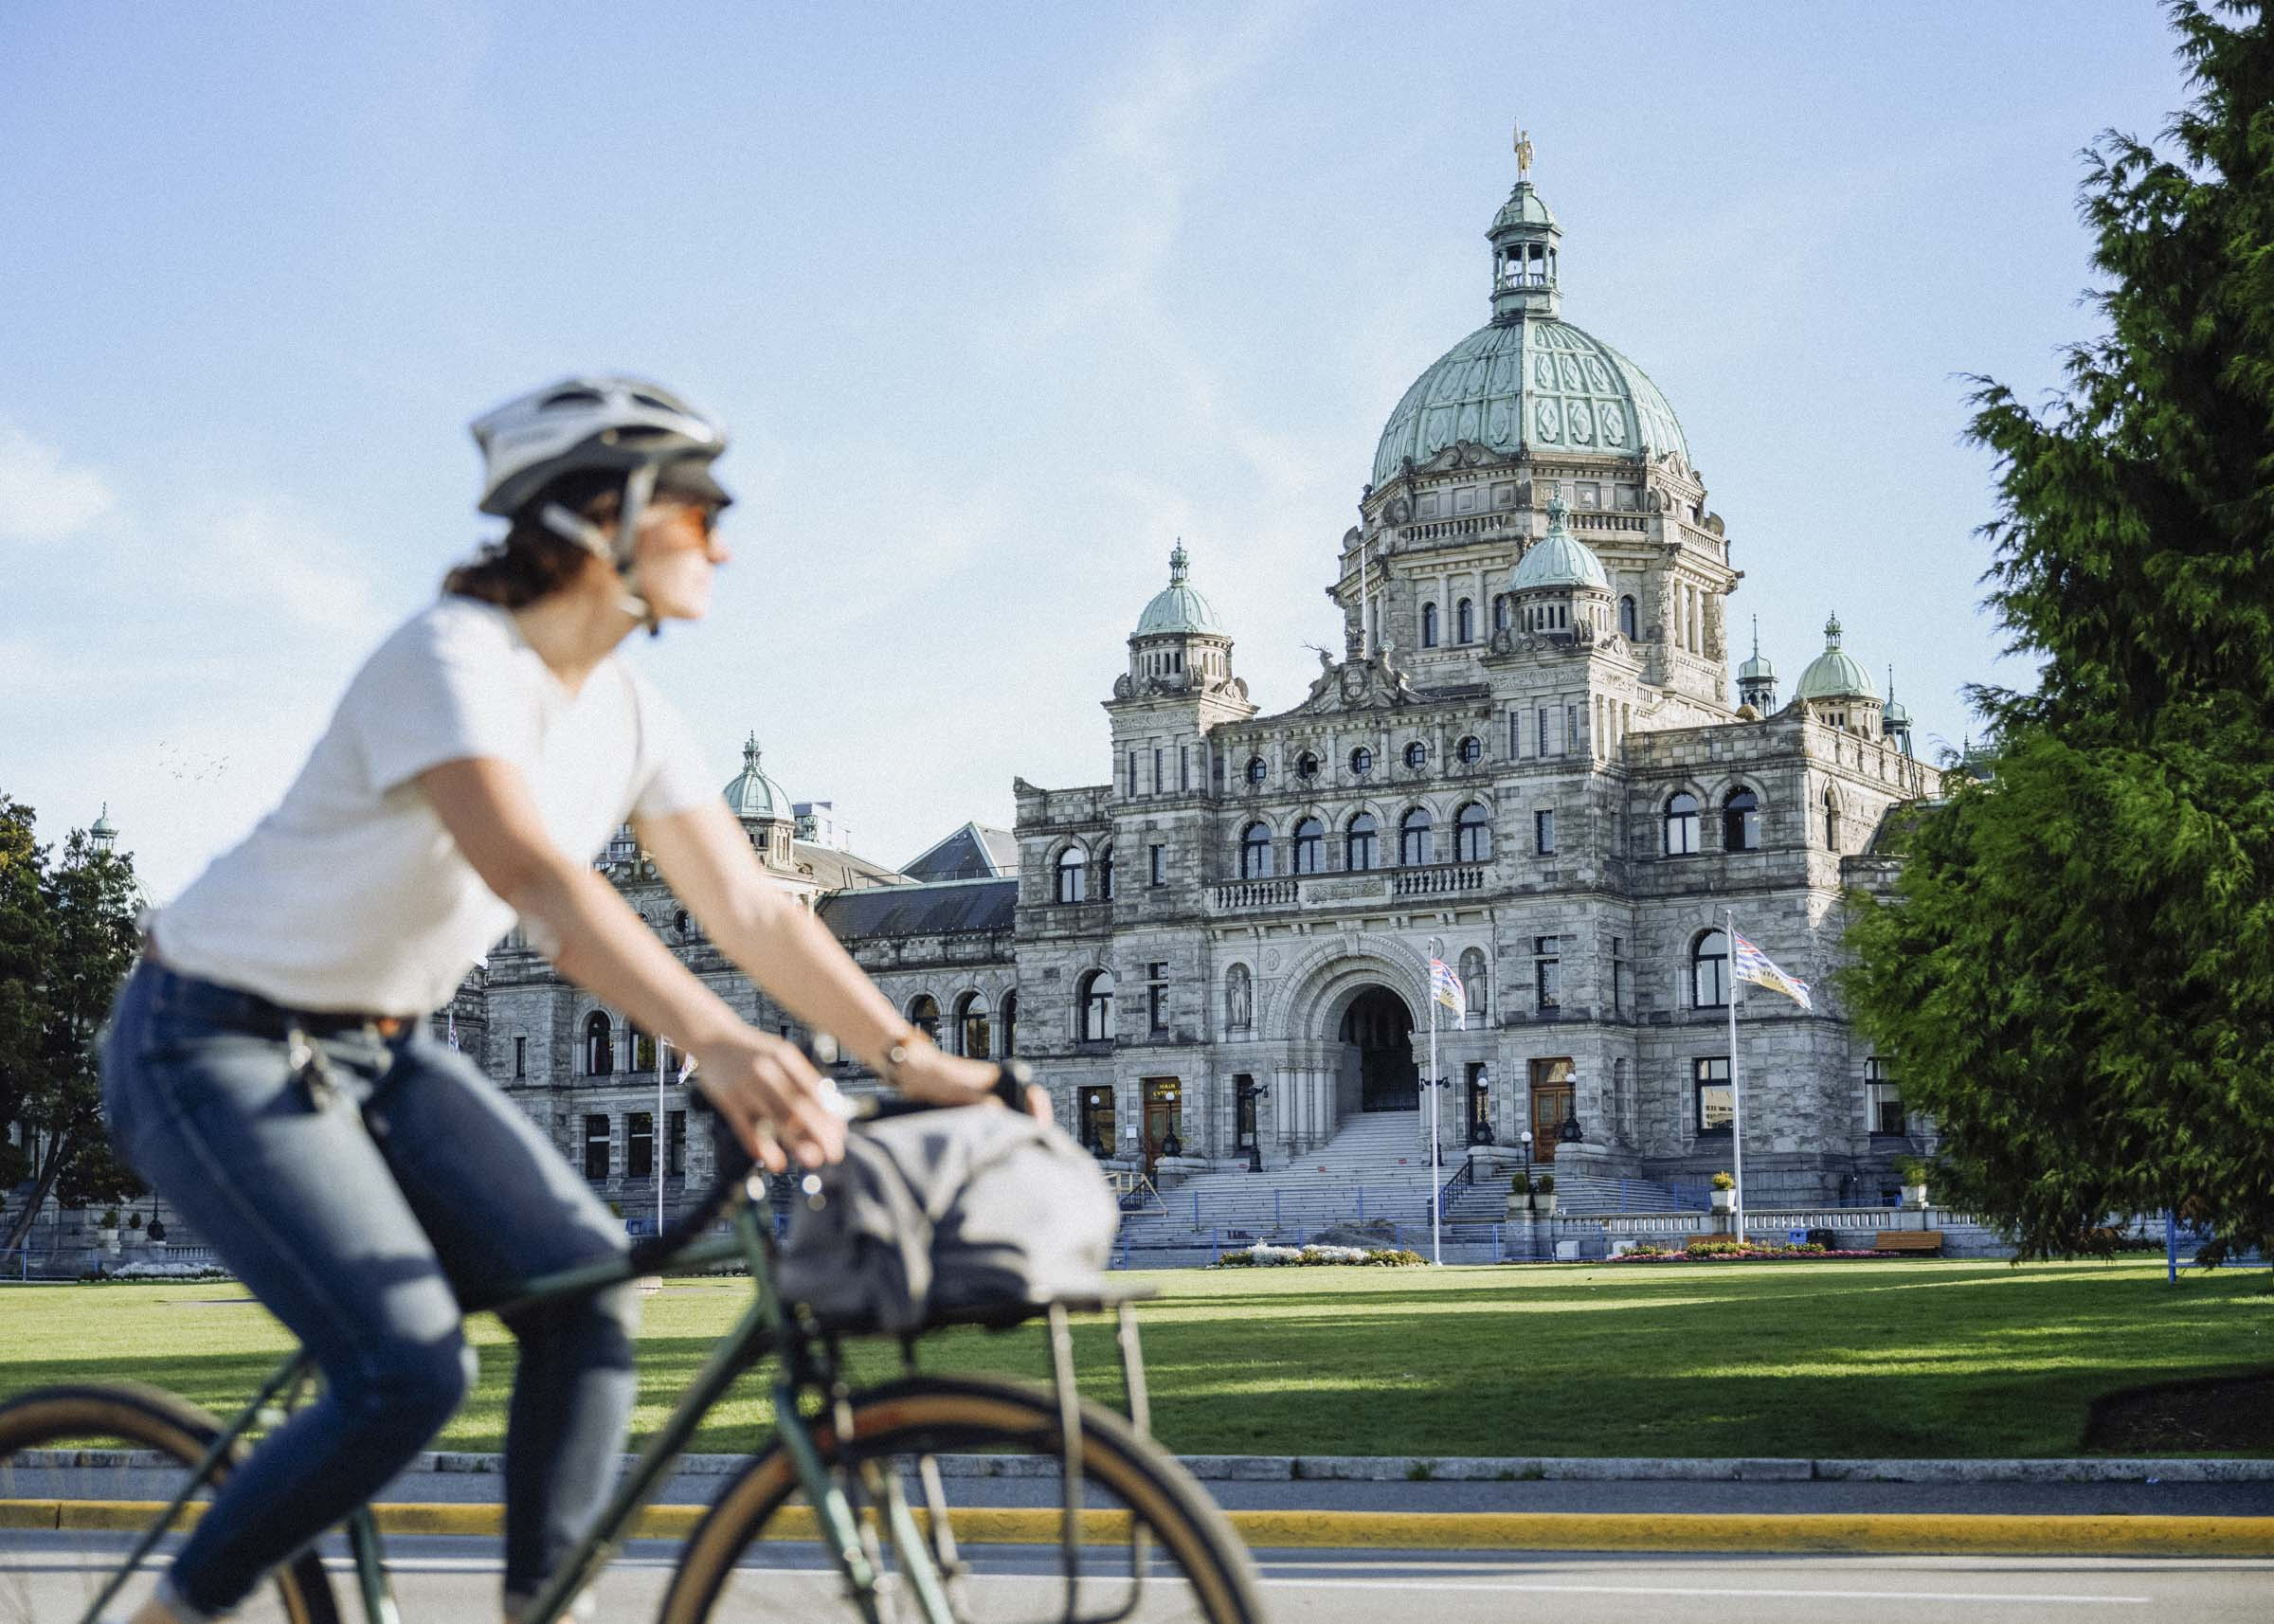 Victoria by Bicycle